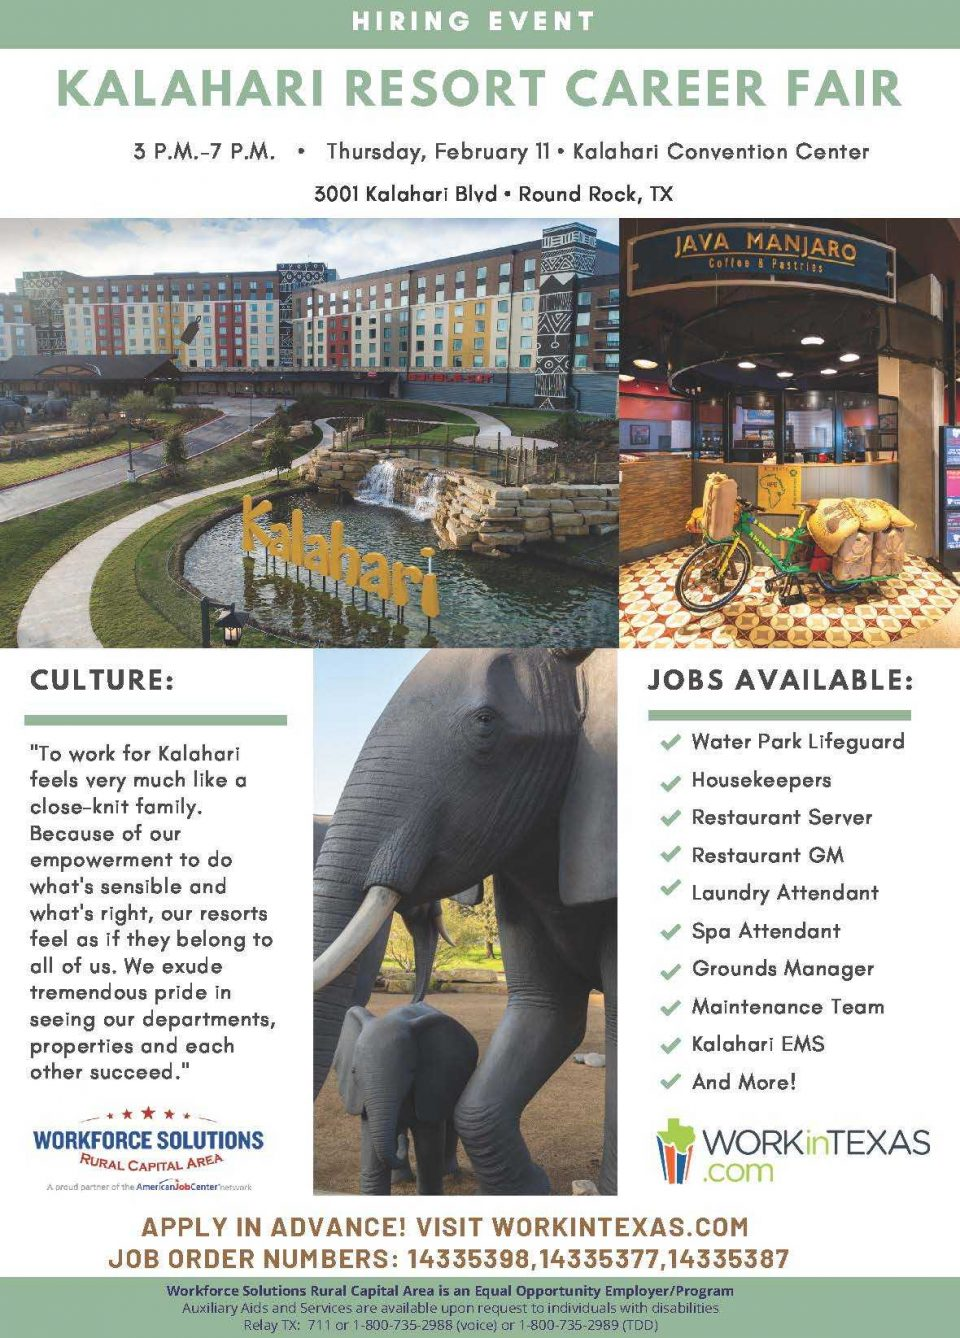 Kalahari Resorts Hosting Hiring Event on Feb. 11: Join the Team Operating the Largest Water Park in the Country